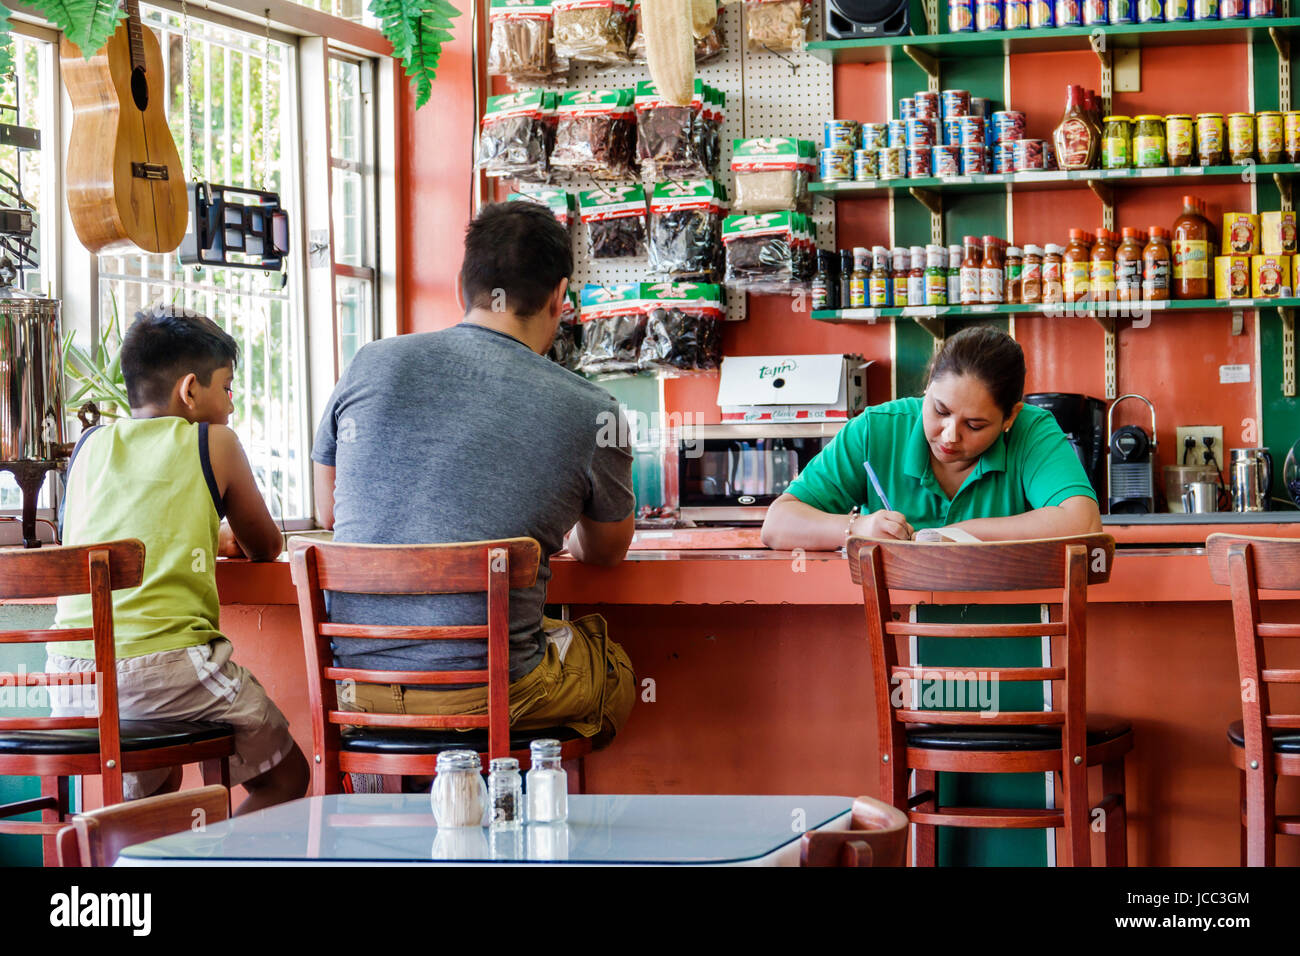 Miami Florida Little Havana neighborhood Taqueria El Mexicano restaurant dining ethnic food Mexican counter Hispanic - Stock Image